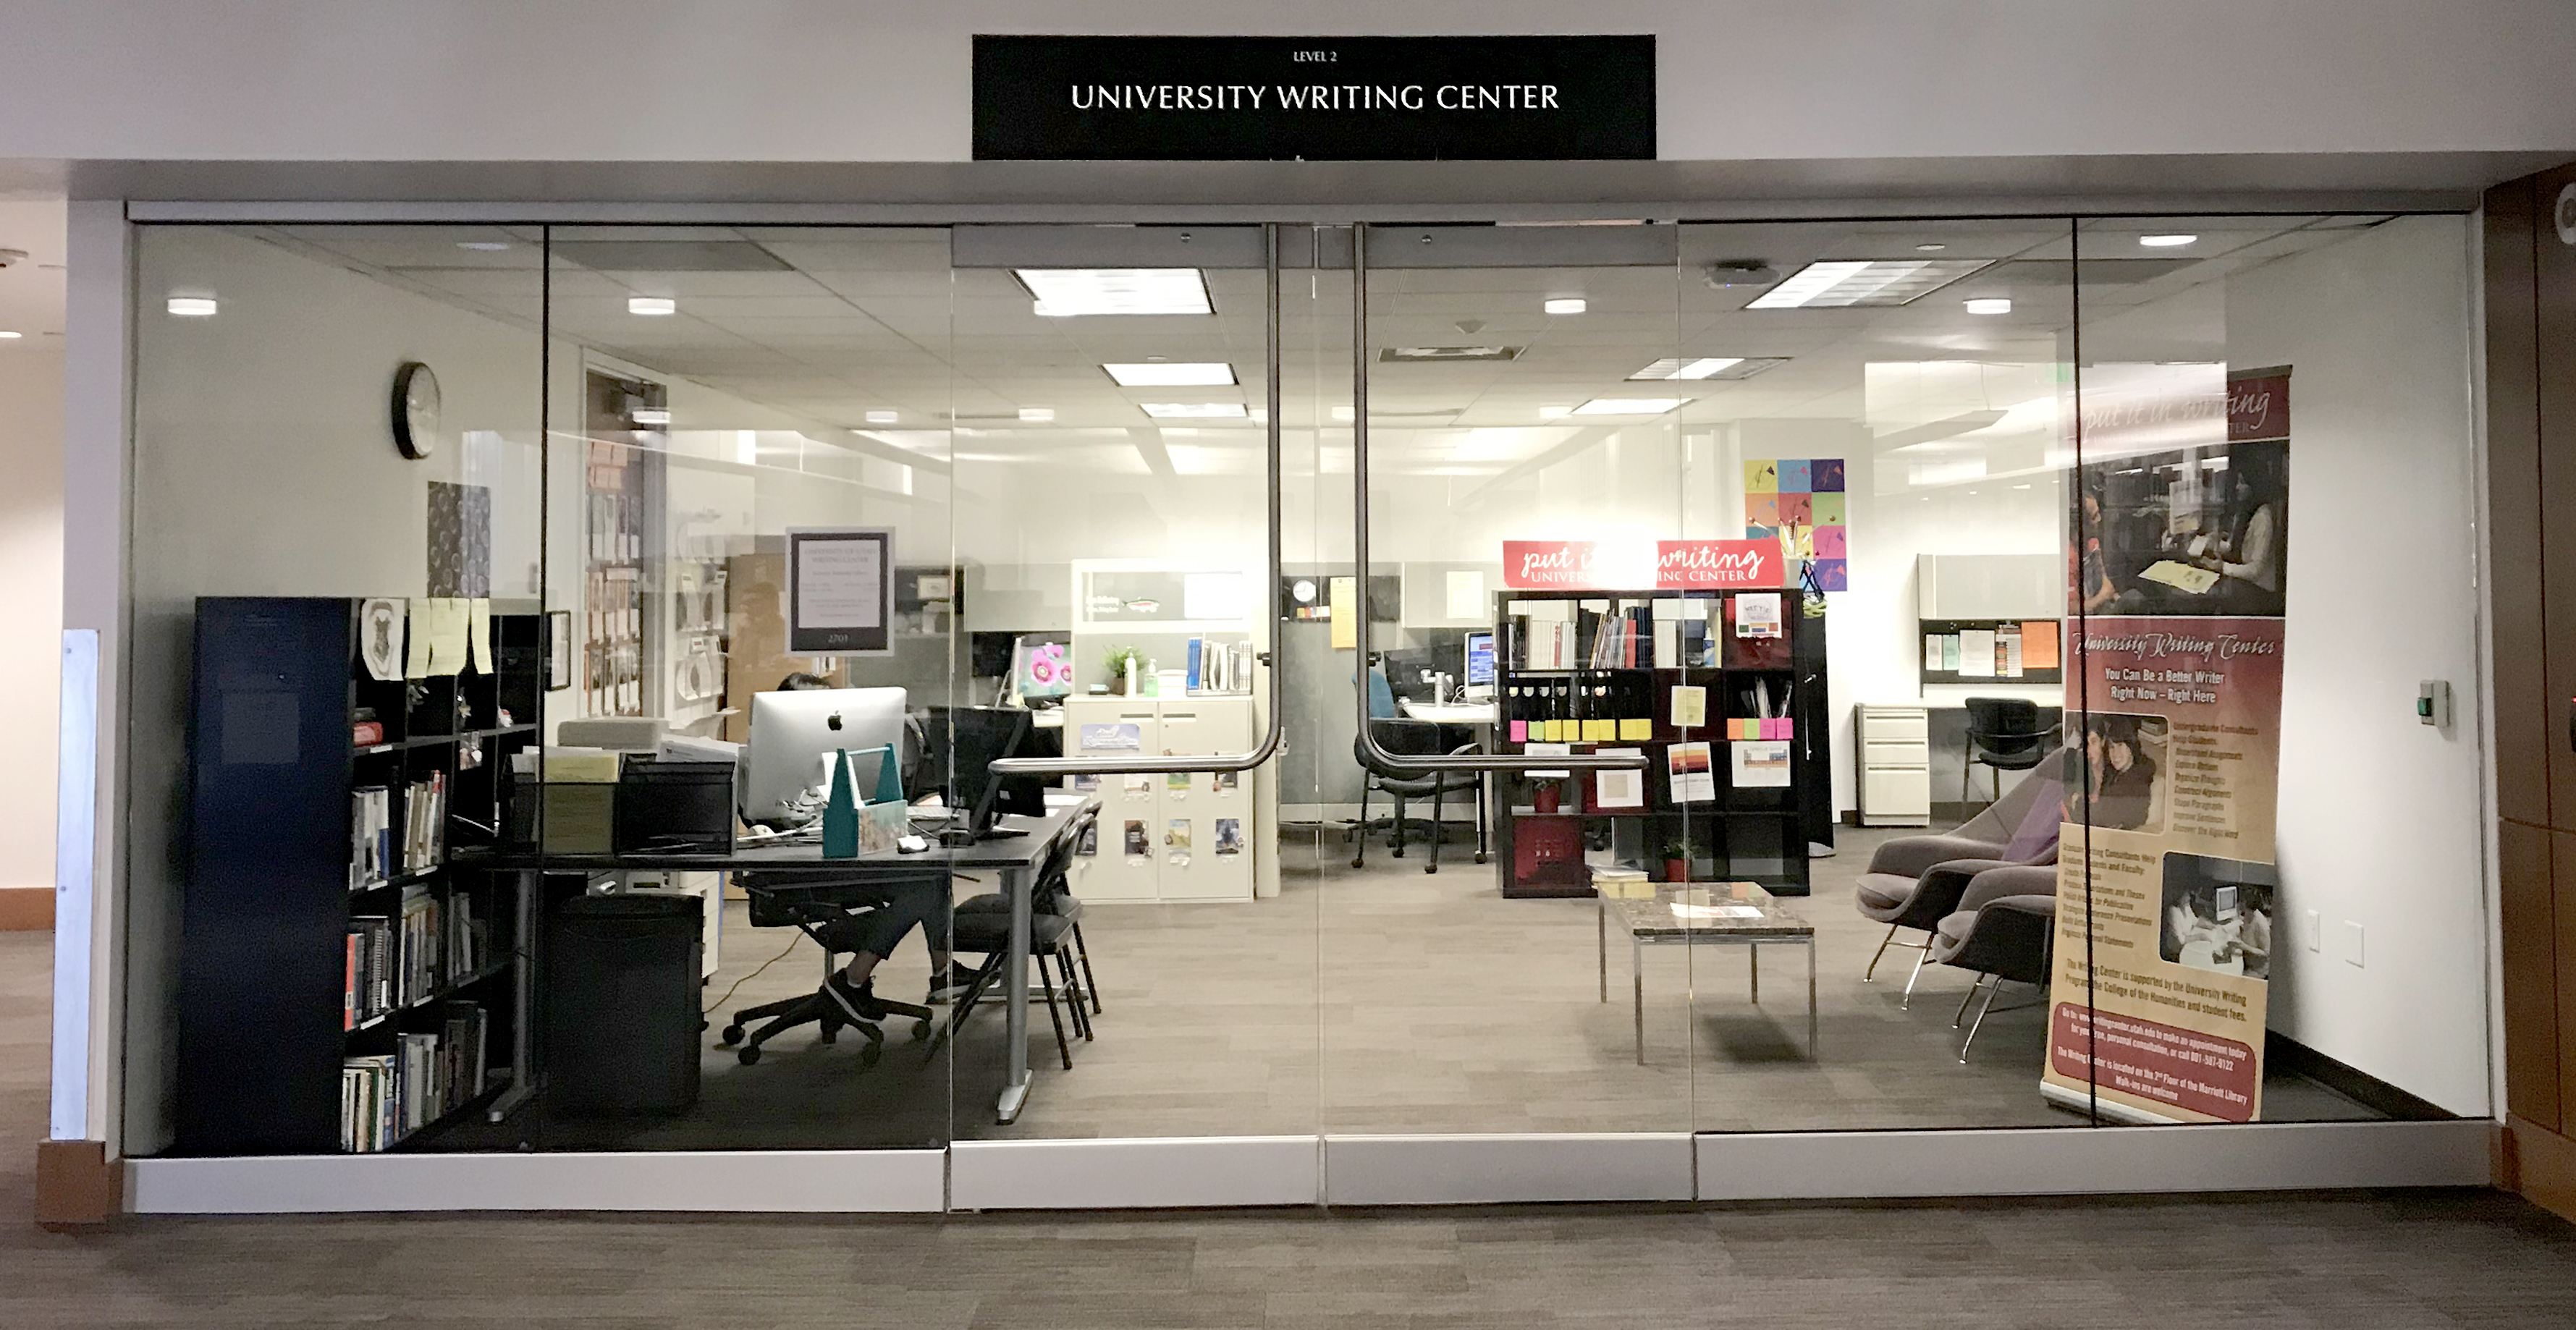 "An office behind glass doors.  There are sectioned cubicles for writing consultations behind a front desk area with an iMac computer.  Above the doors is a sign that reads ""University Writing Center."""